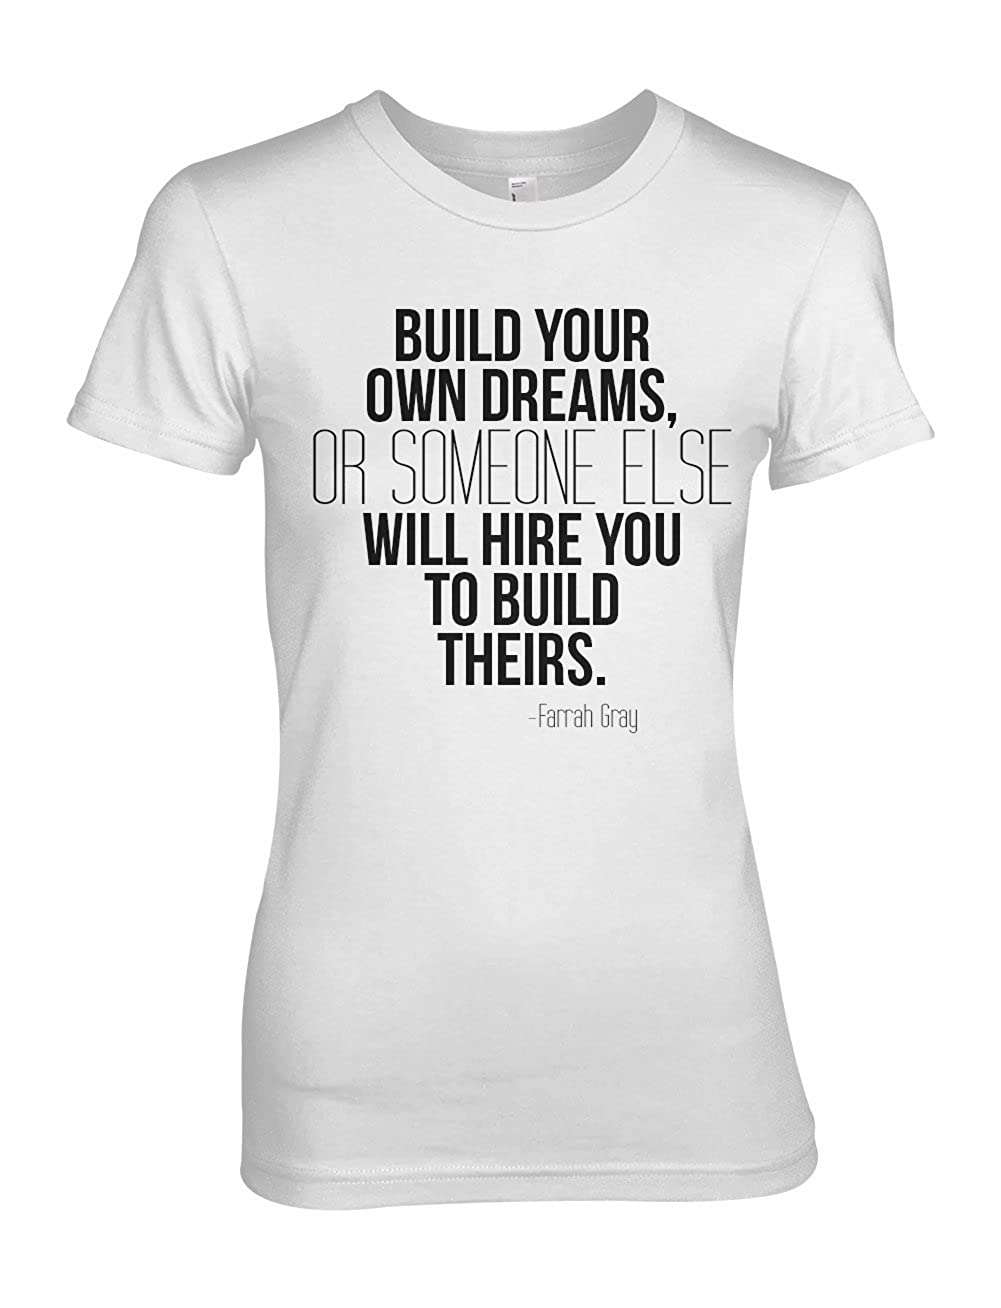 cafb7b86 Amazon.com: Build Your Own Dreams Motivational Quote Text Women's T-Shirt:  Clothing